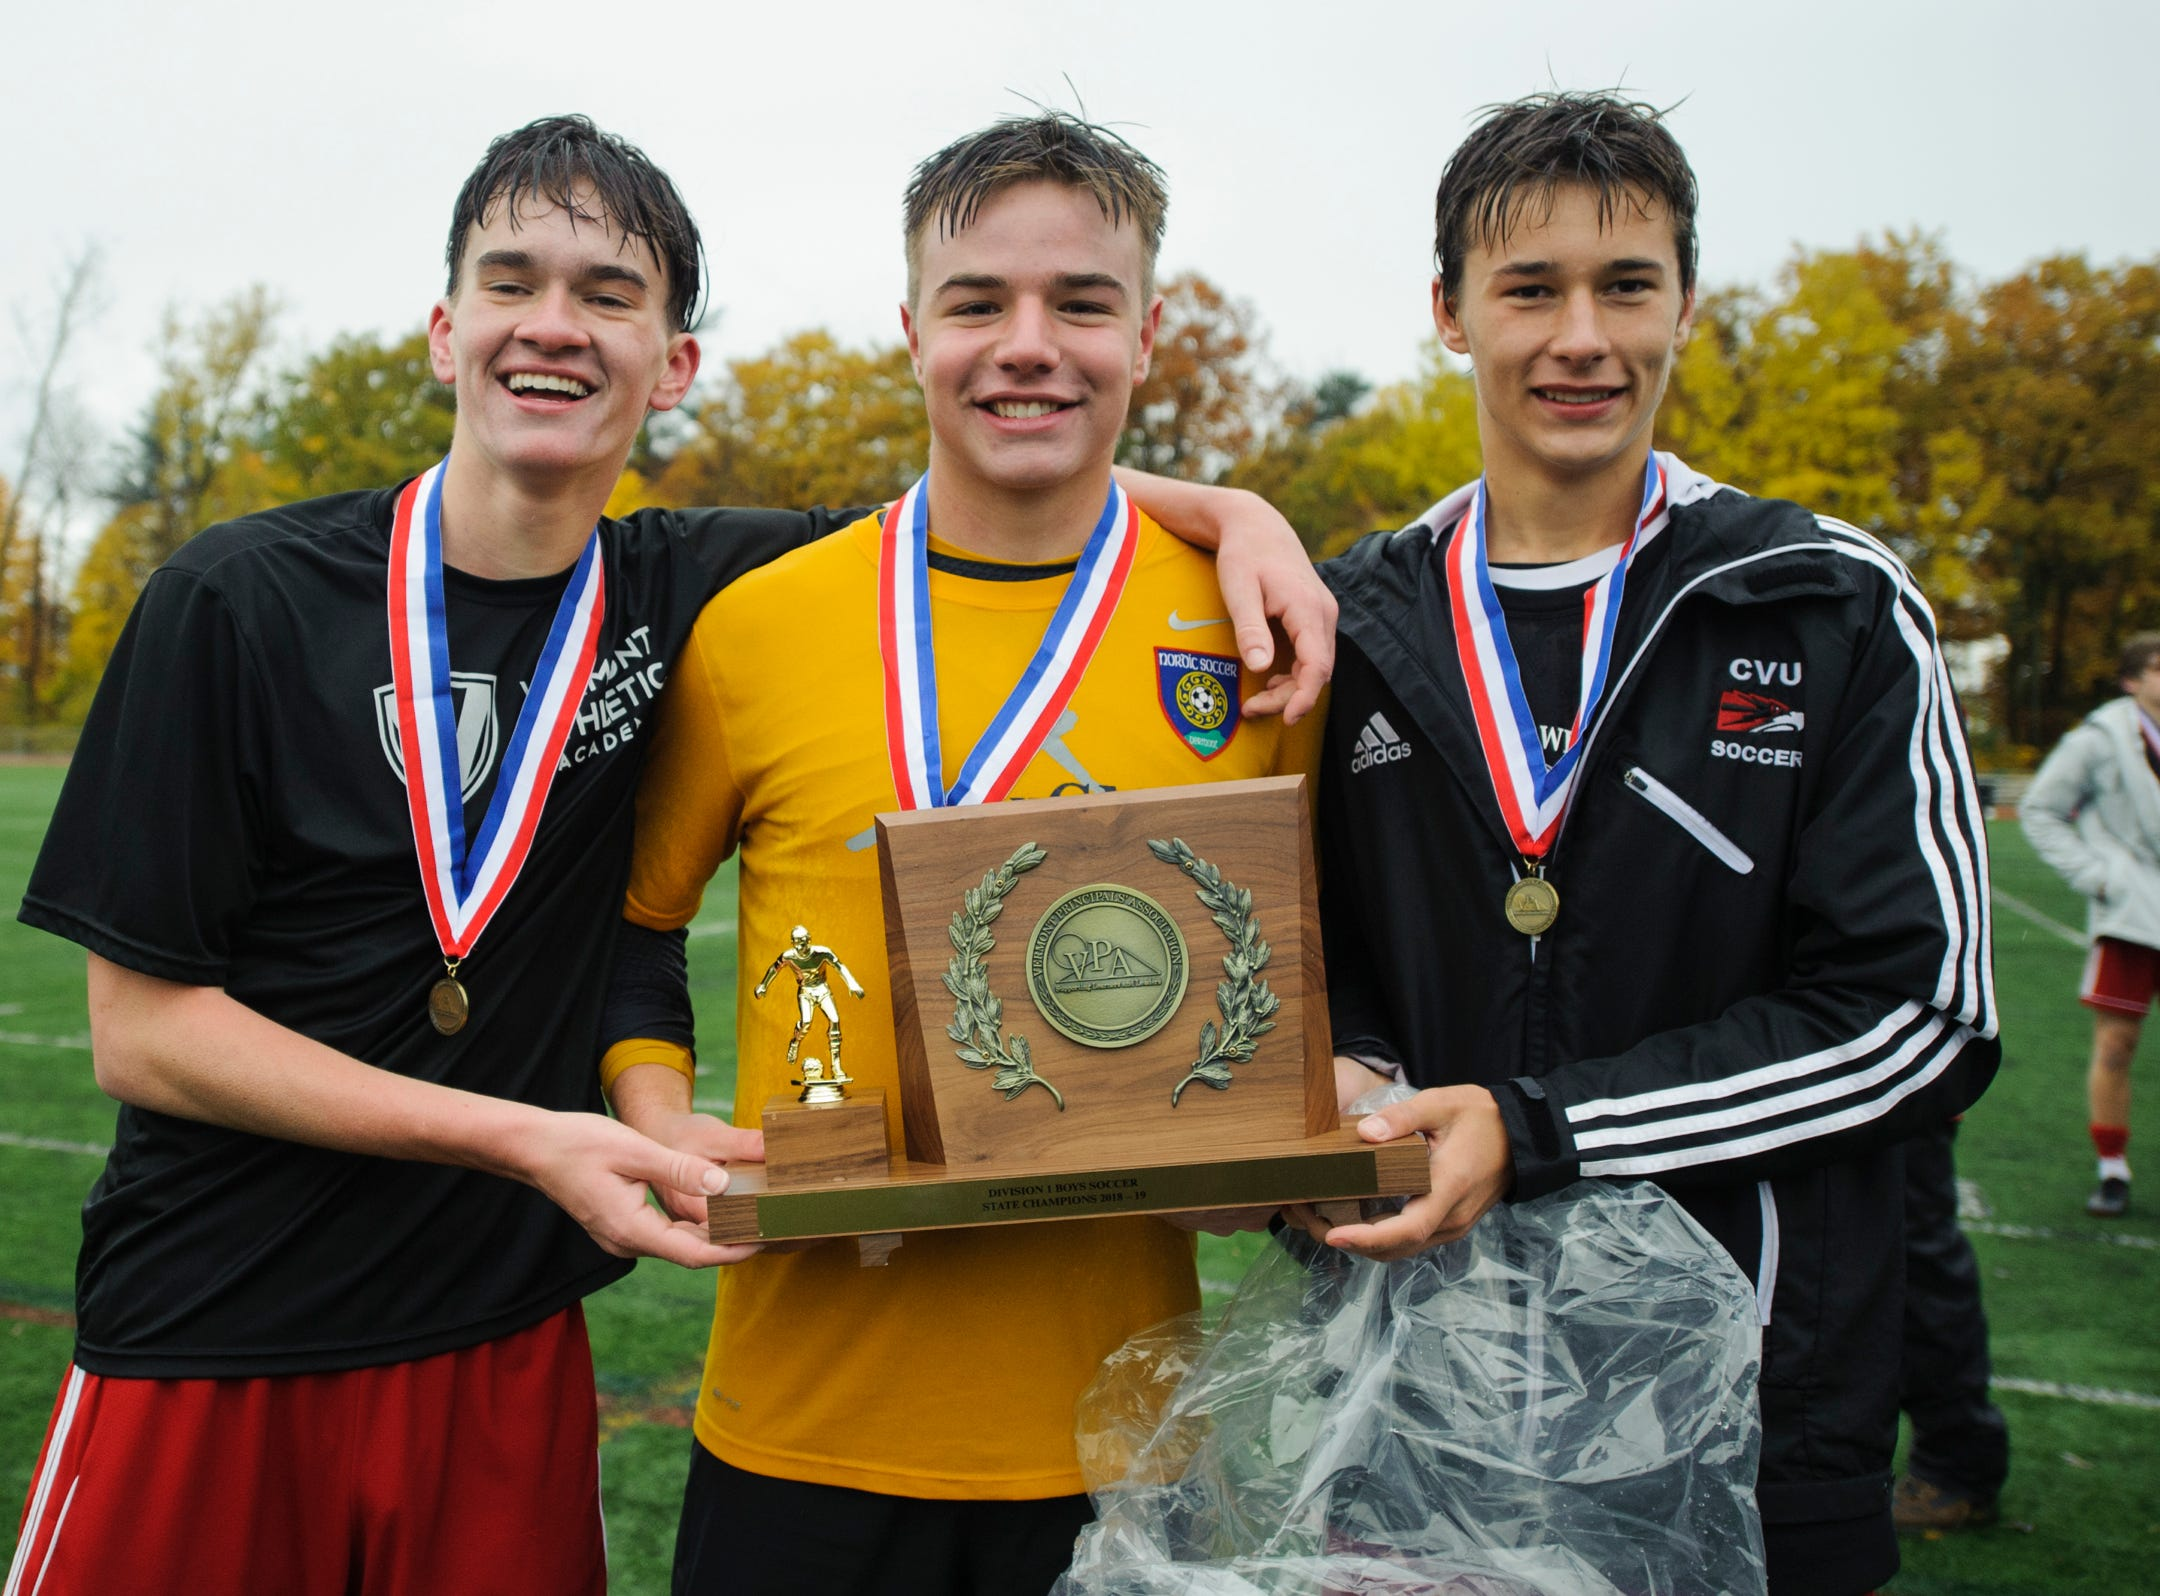 CVU captains hold the championship trophy during the Division I boys soccer championship game between the St. Johnsbury Hilltoppers and the Champlain Valley Union Redhawks at Buck Hard Field on Saturday morning November 3, 2018 in Burlington.